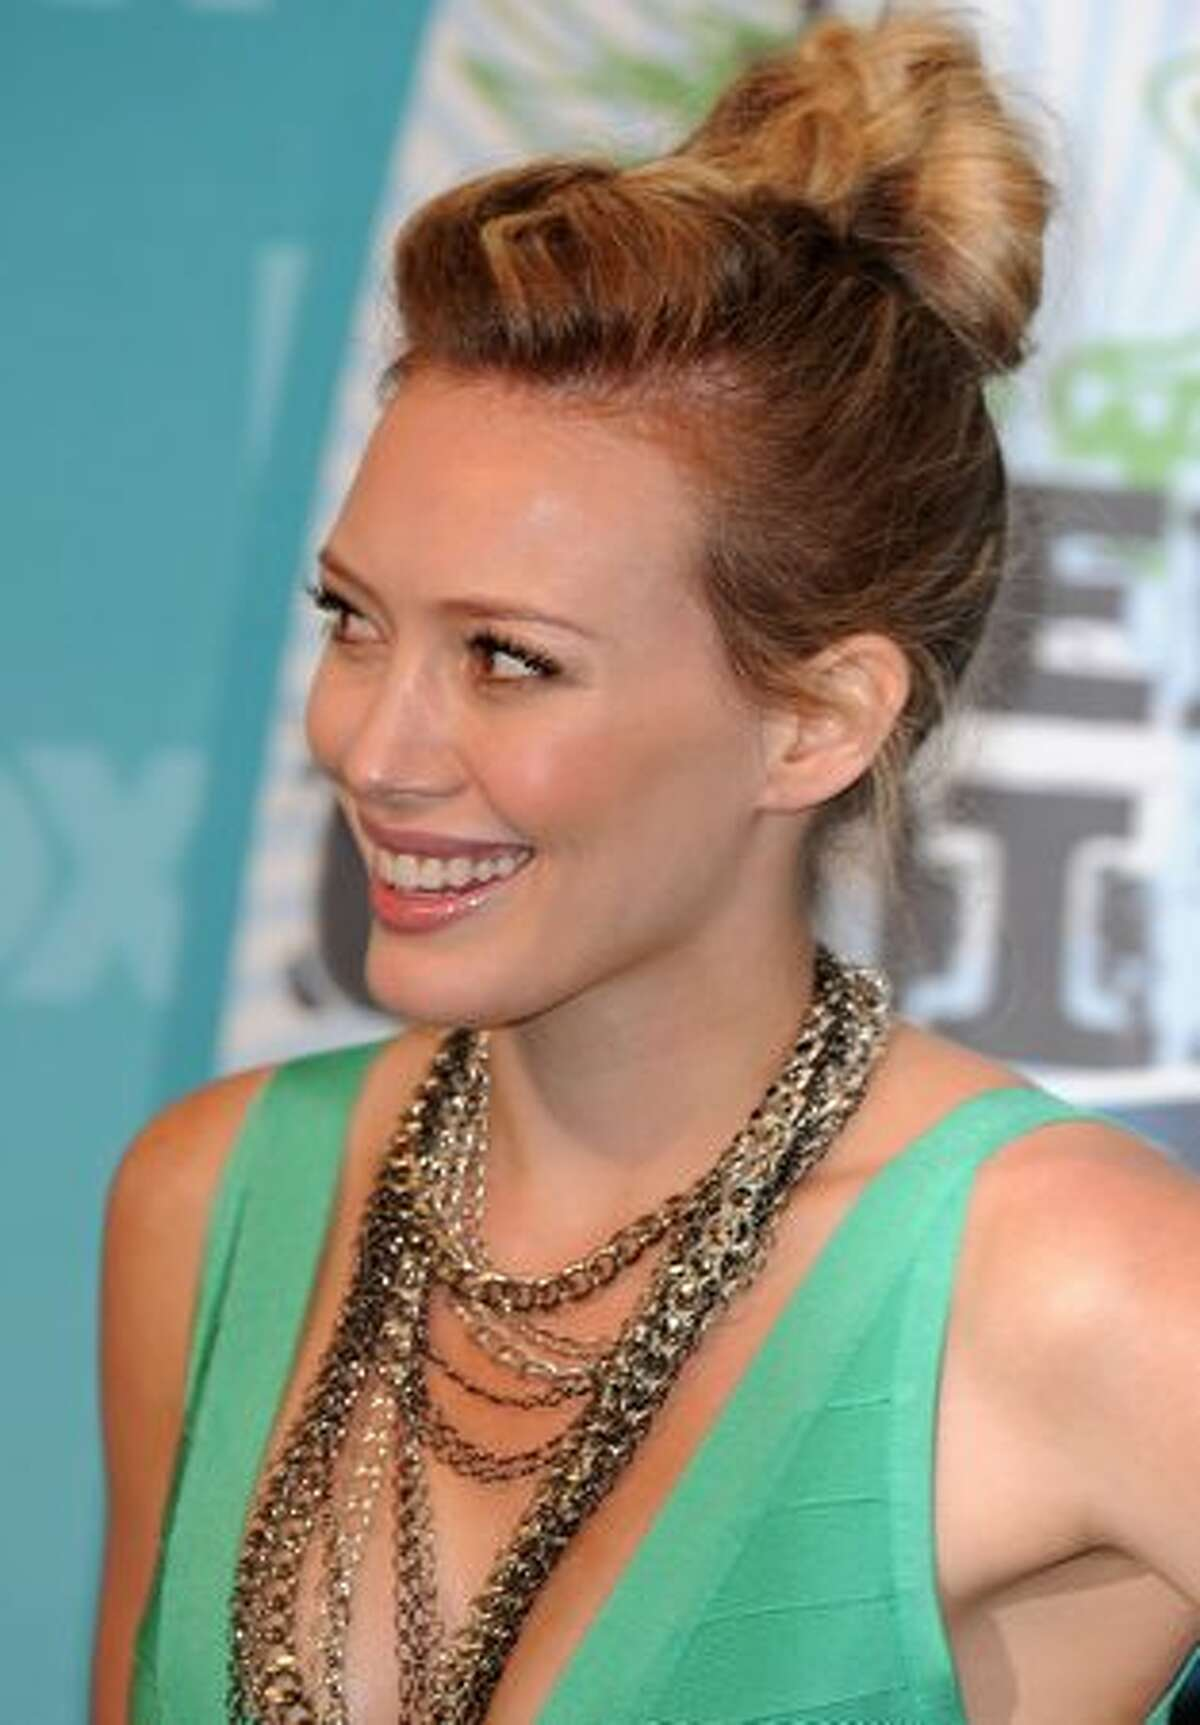 ctress Hilary Duff poses in the press room at the 2010 Teen Choice Awards held at the Gibson Amphitheatre in Universal City, California.